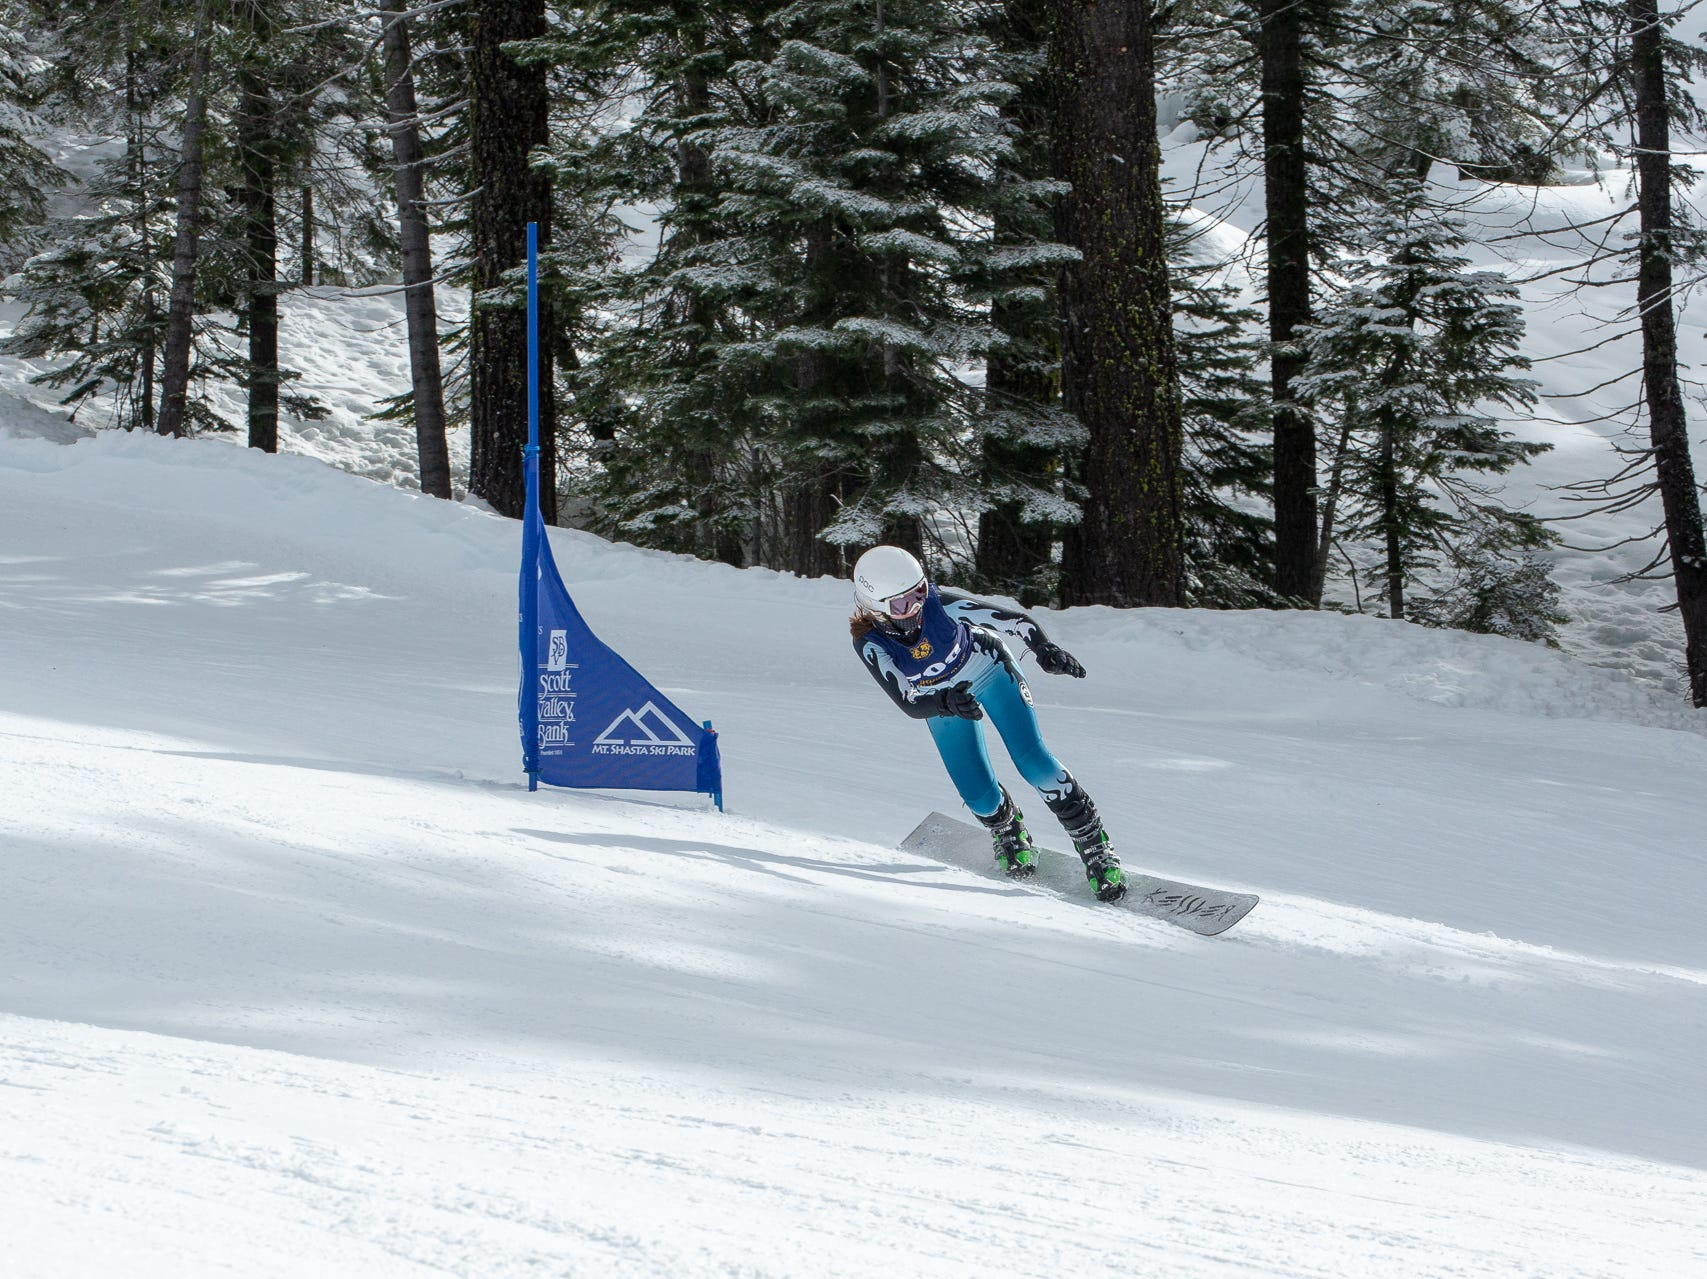 Tate Harkness of Mt. Shasta competes in the second high school ski meet of 2019 on Monday, Jan. 21 at Mt. Shasta Ski Park.